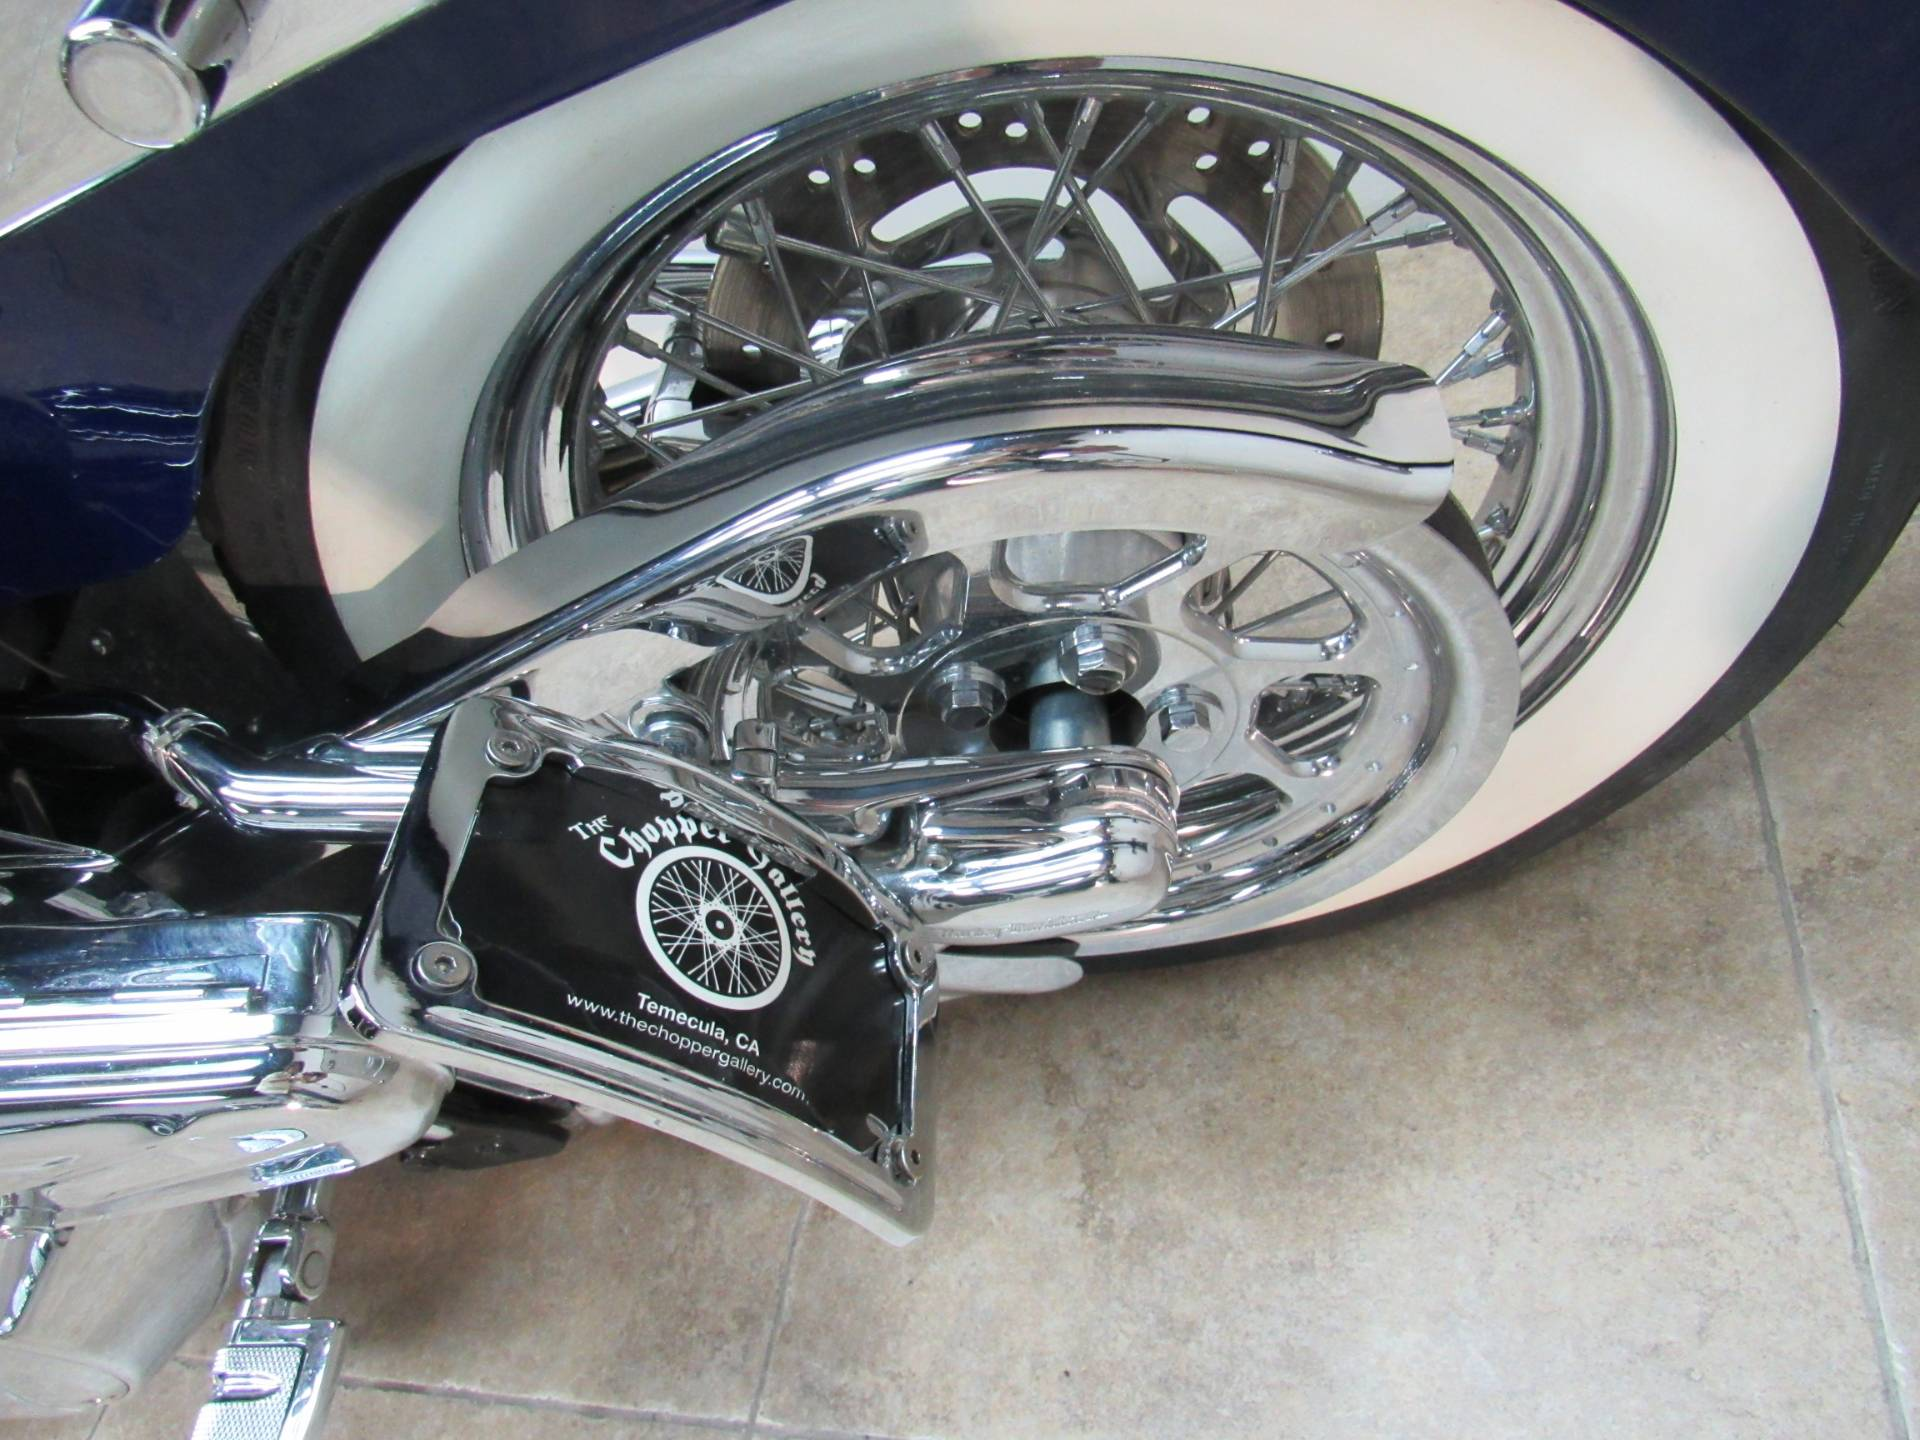 2007 Harley-Davidson Softail® Deluxe in Temecula, California - Photo 32